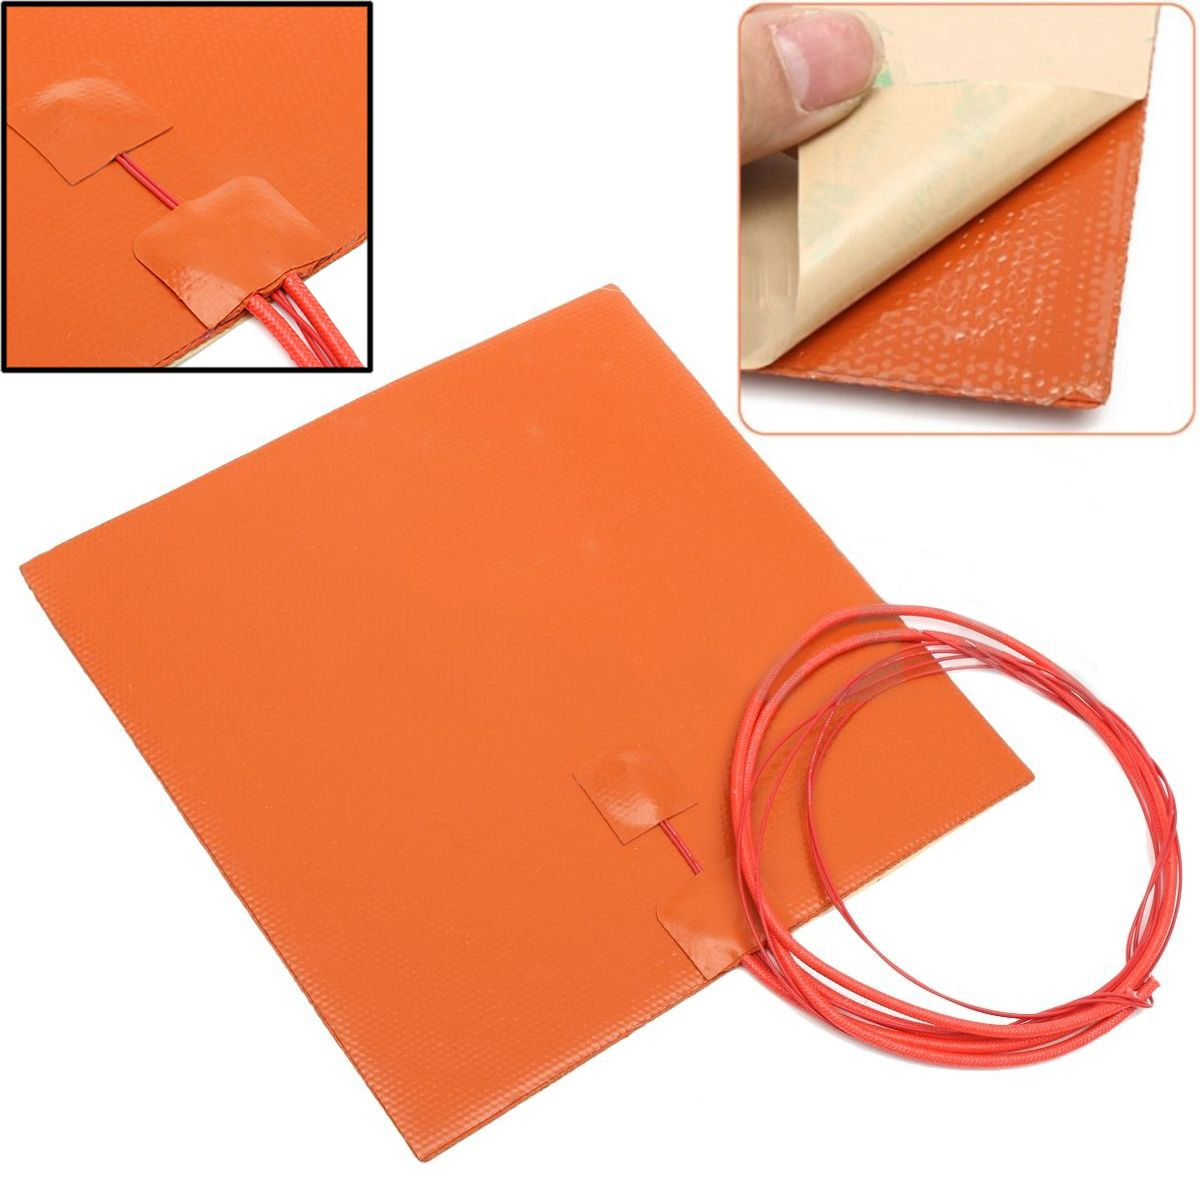 Silicone Heating Pad 200W 12V 200*200mm Mayitr Thermal Conversion Repair Tools For 3D Laser Printer Heated Bed Heating Mat